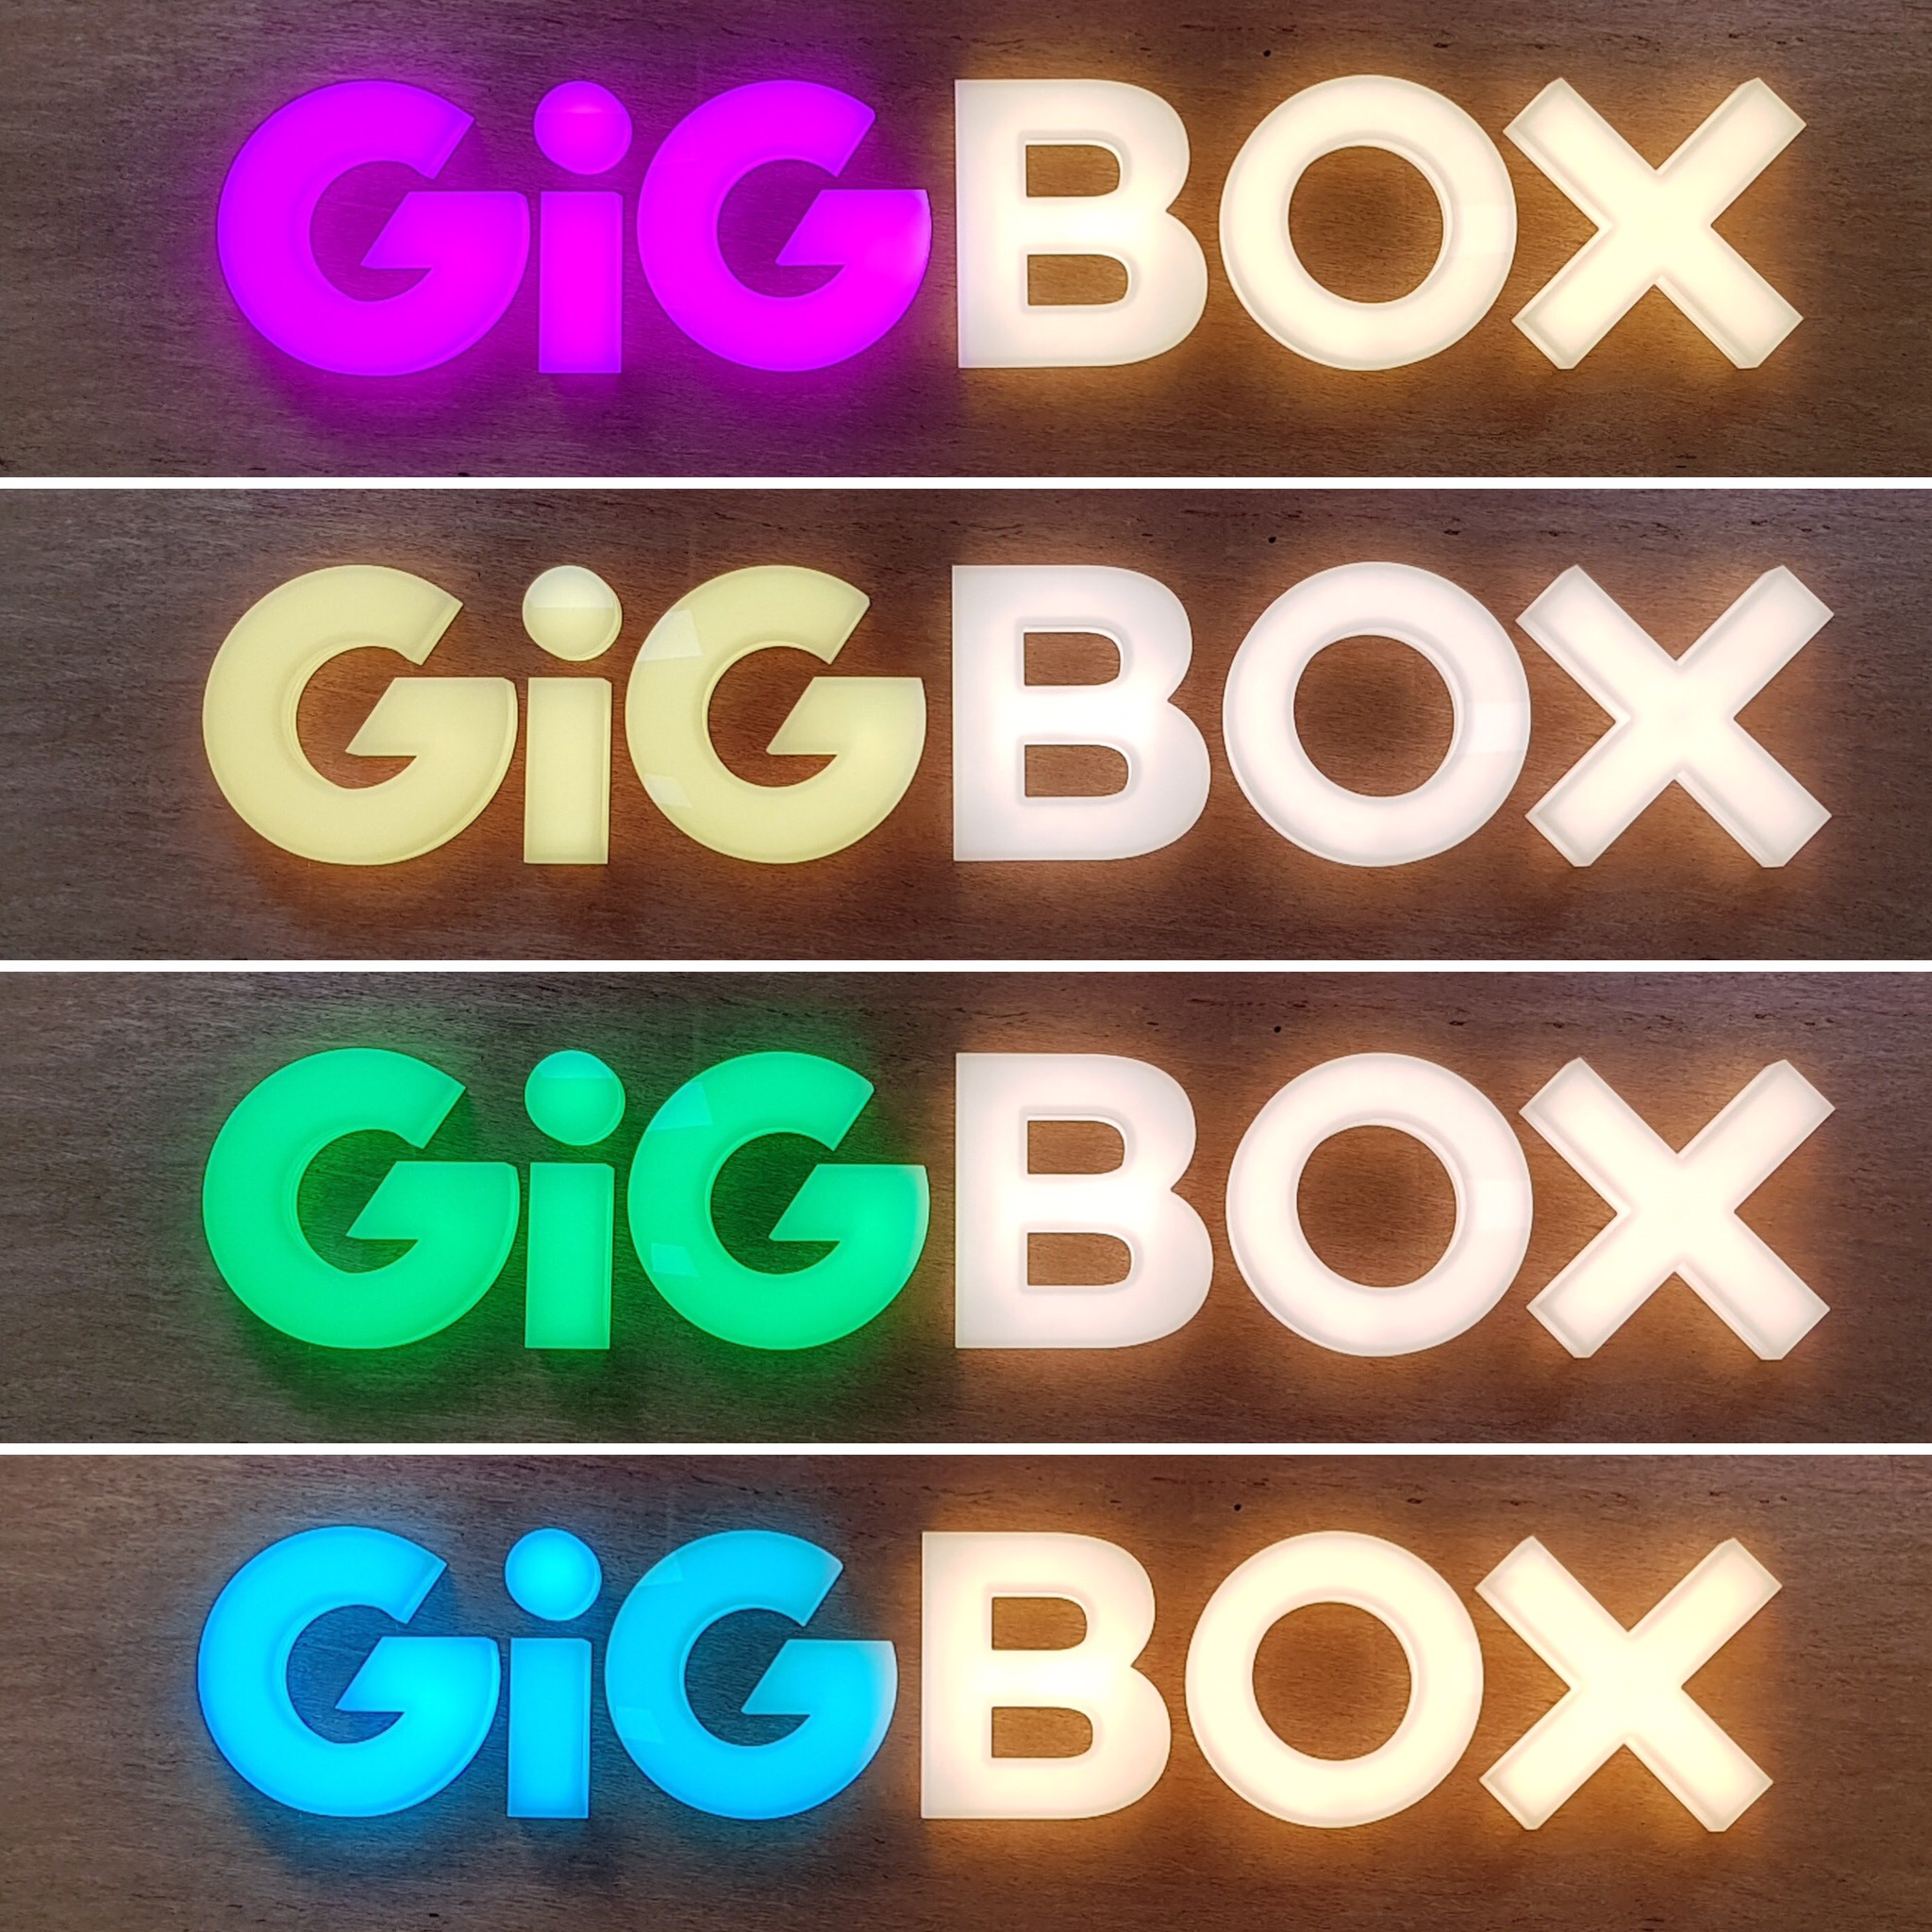 GIGBOX LED colour changing letters